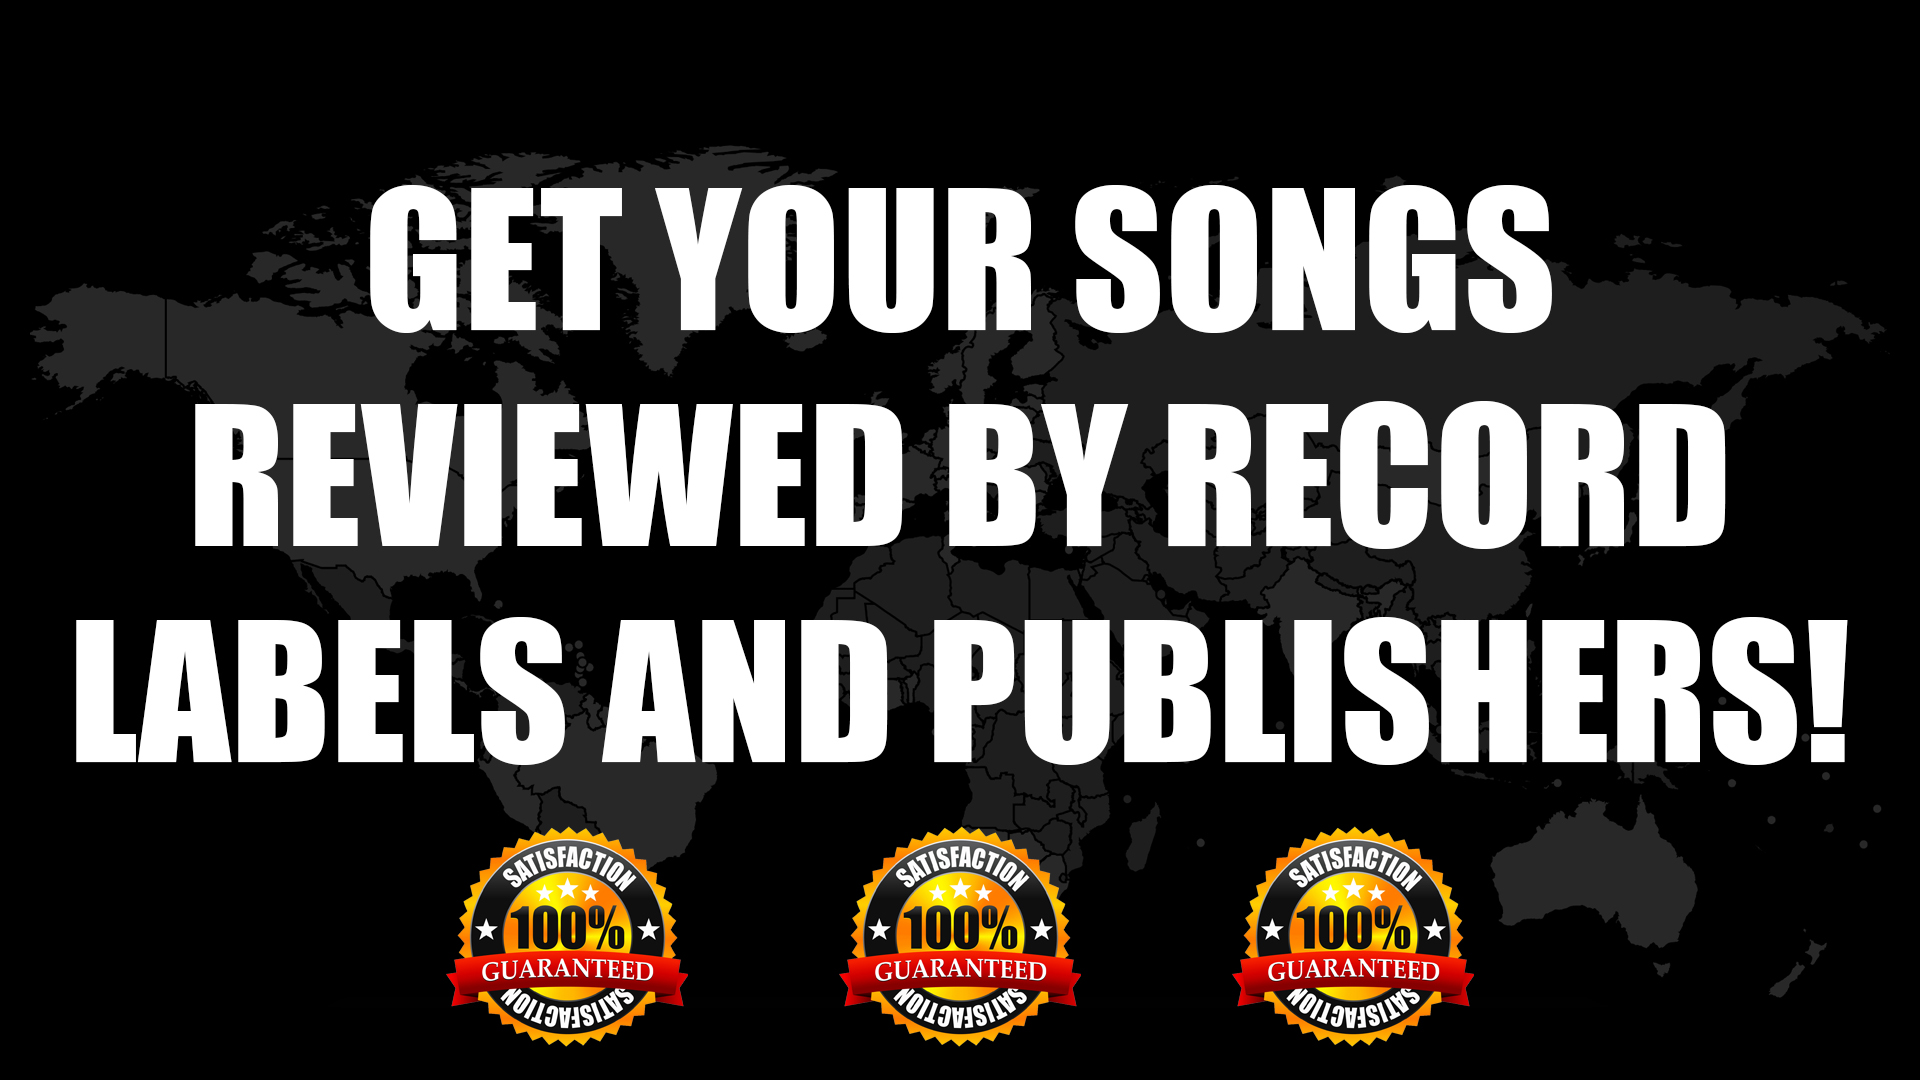 Get Songs Reviewed By Record Labels And Publishers Worldwide